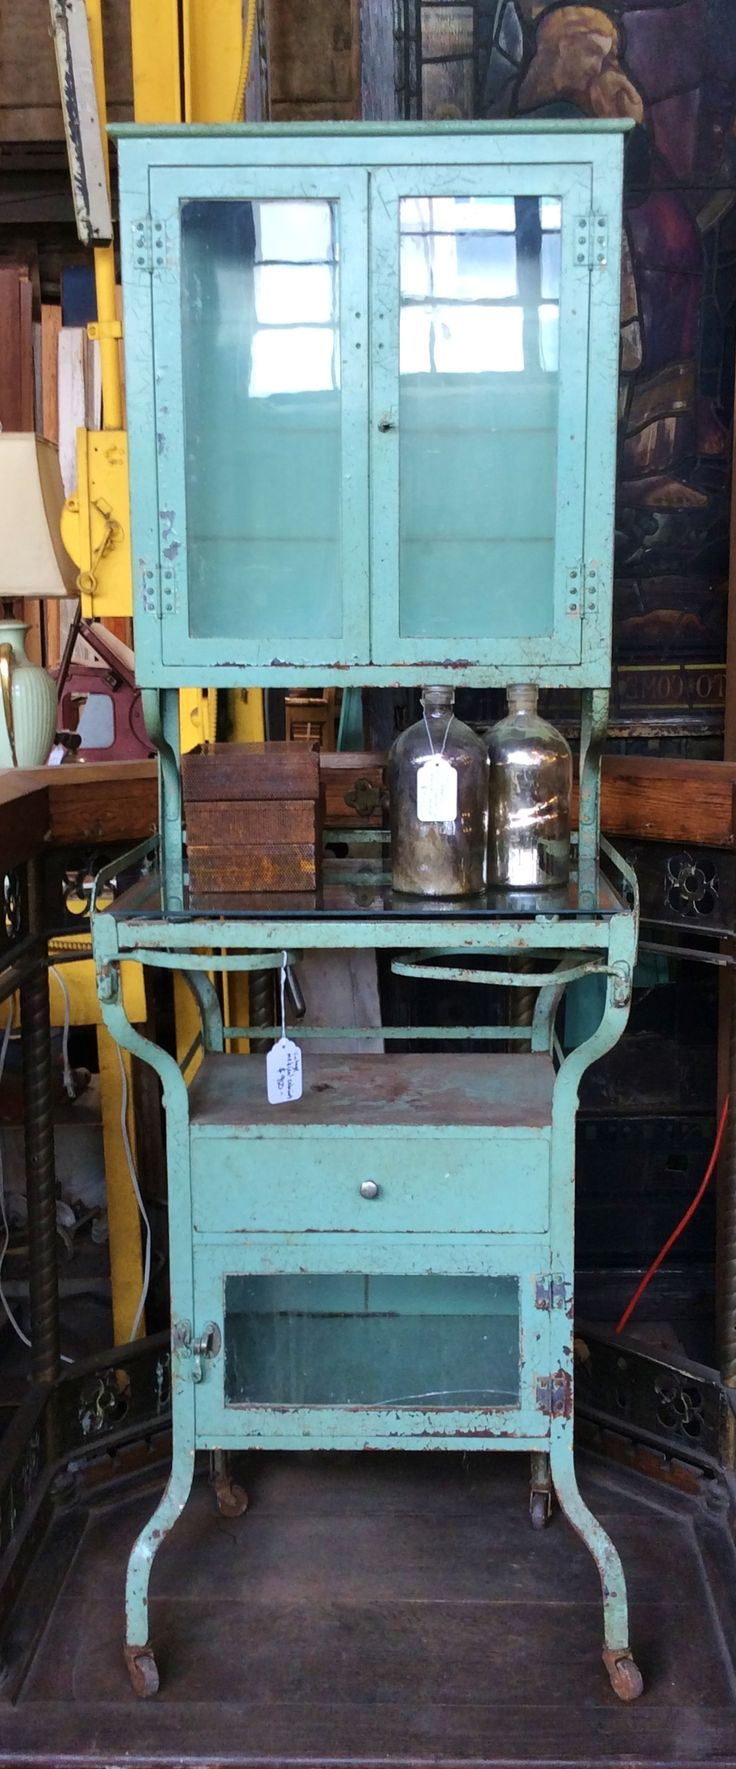 KAGADATO selection. The best in the world. Metal cabinets. **************************************Vintage Medical Cabinet